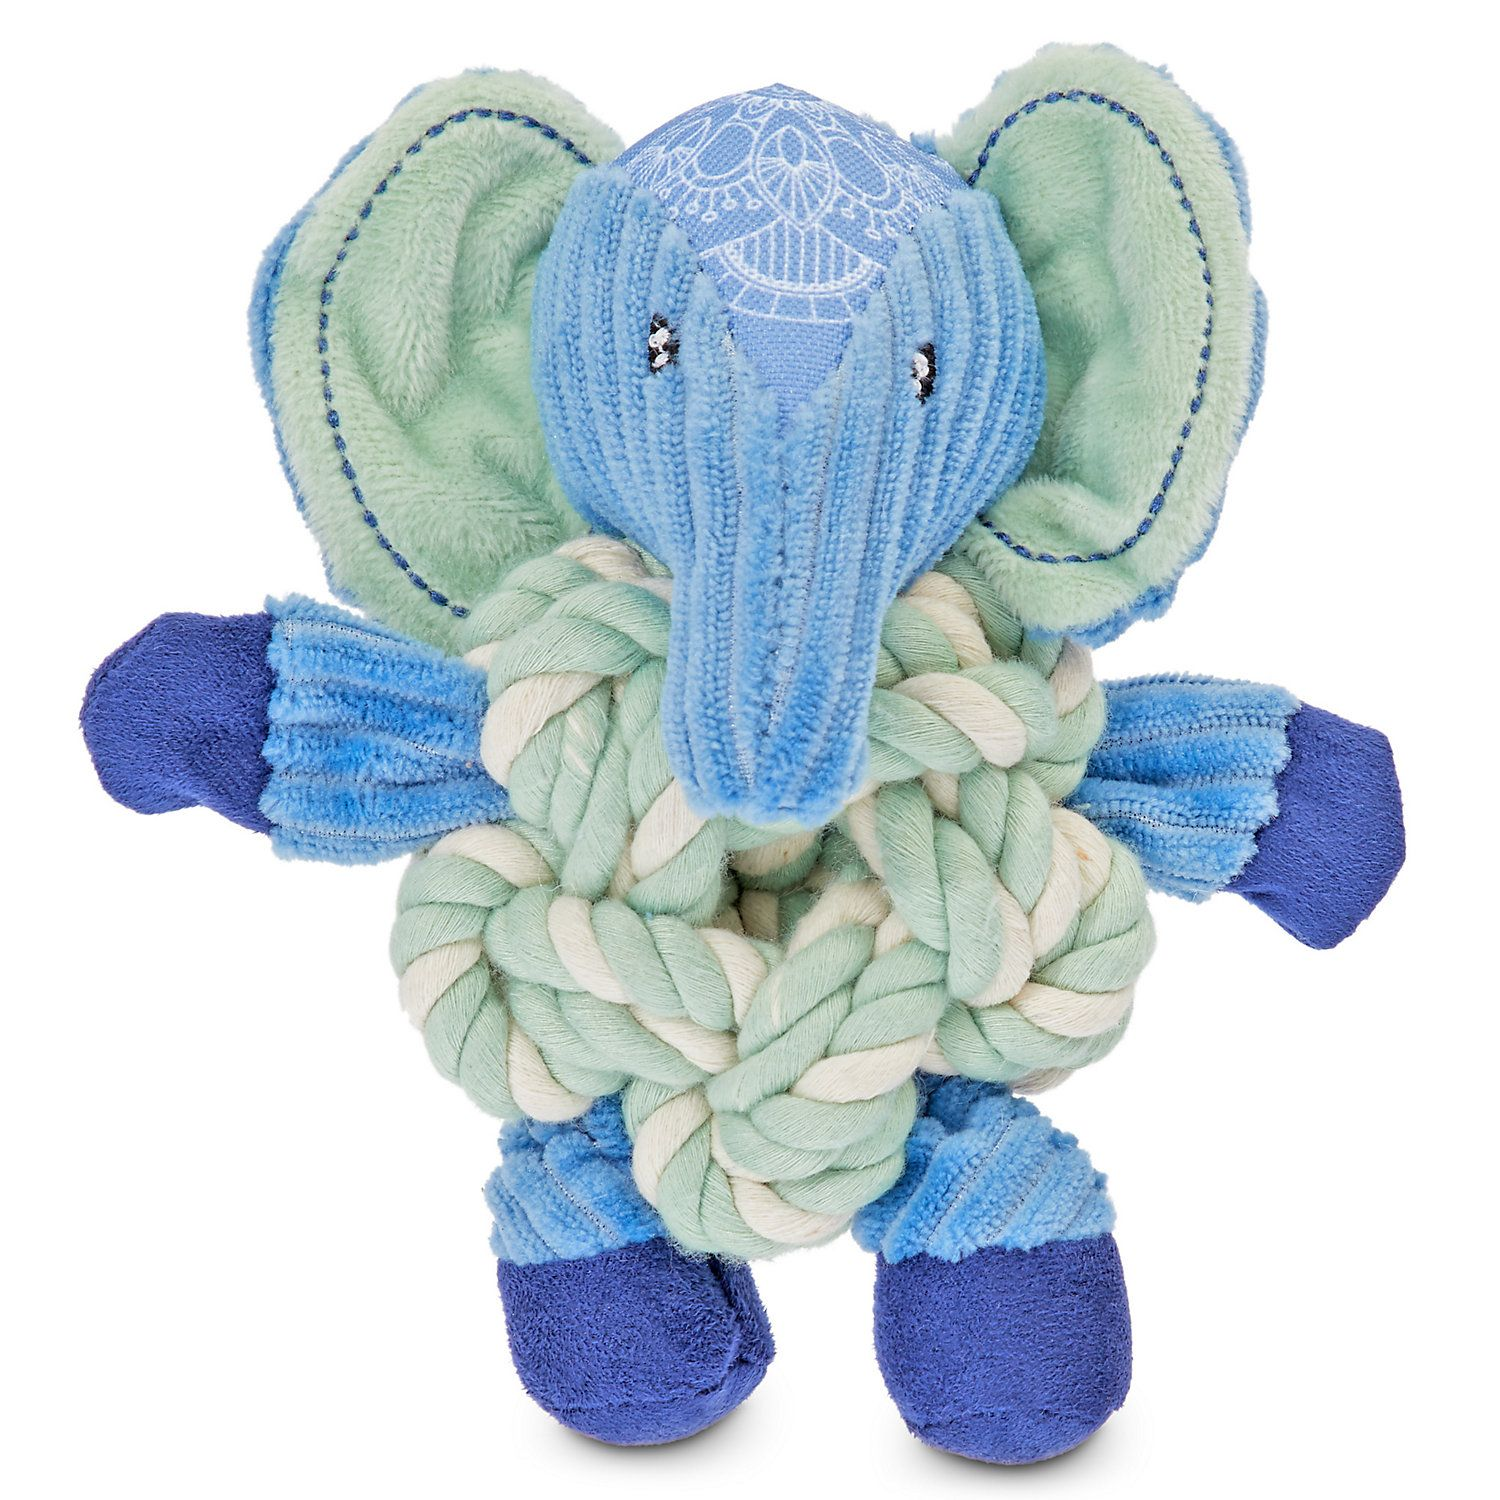 Serenity Peaceful Elephant Plush And Knotted Rope Dog Toy Small